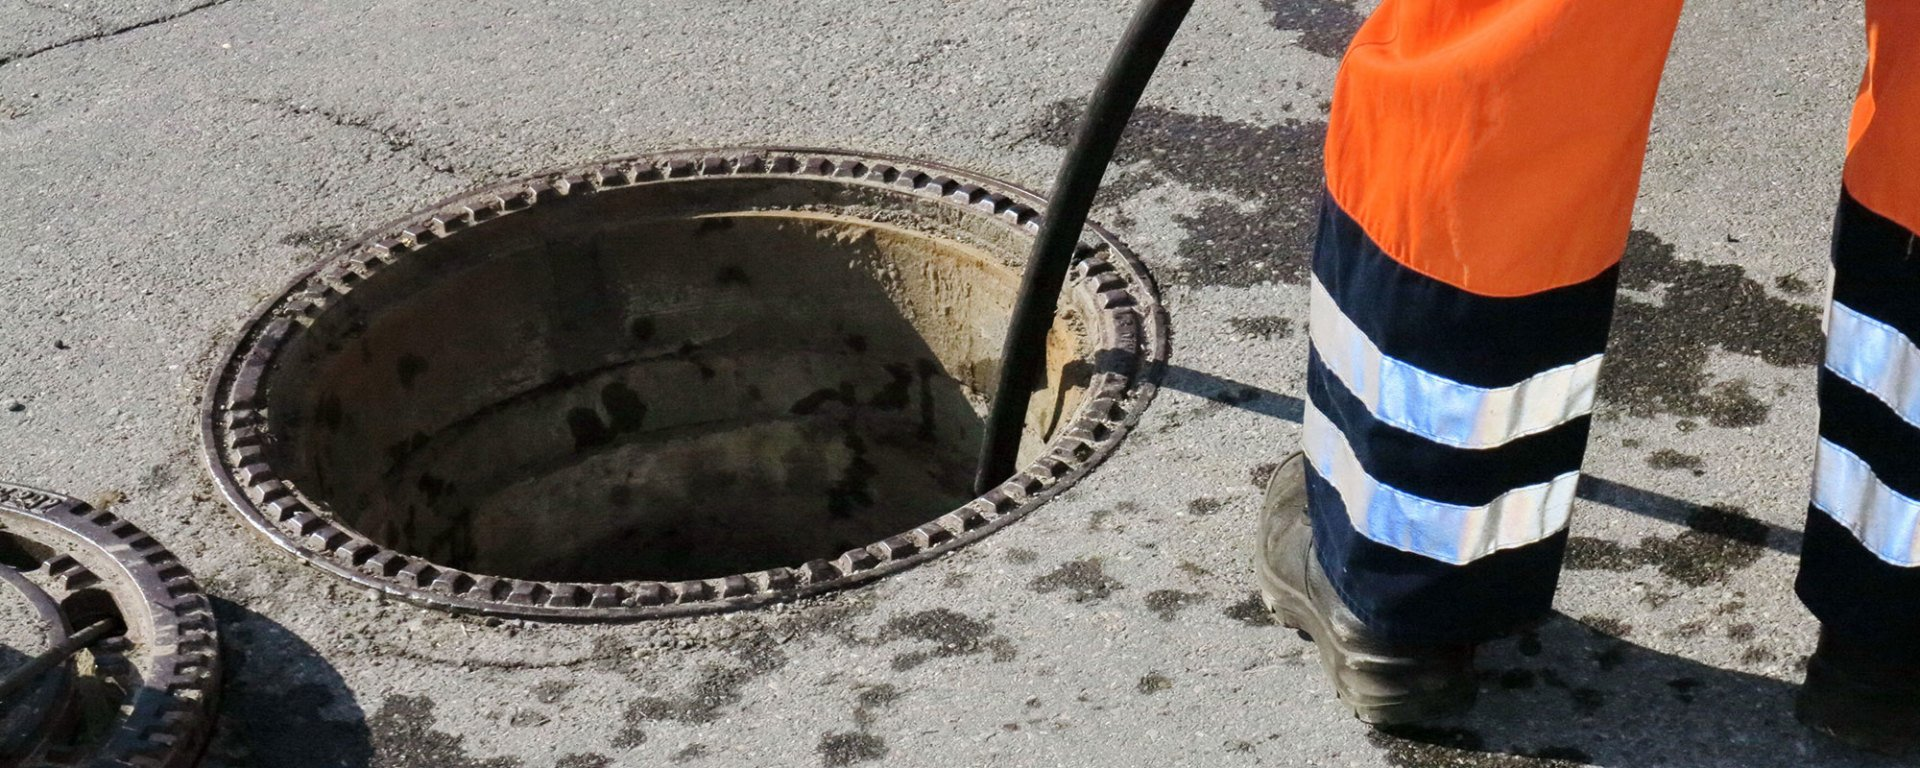 American Sewer Cleaners Sewer Inspection Burton Mi